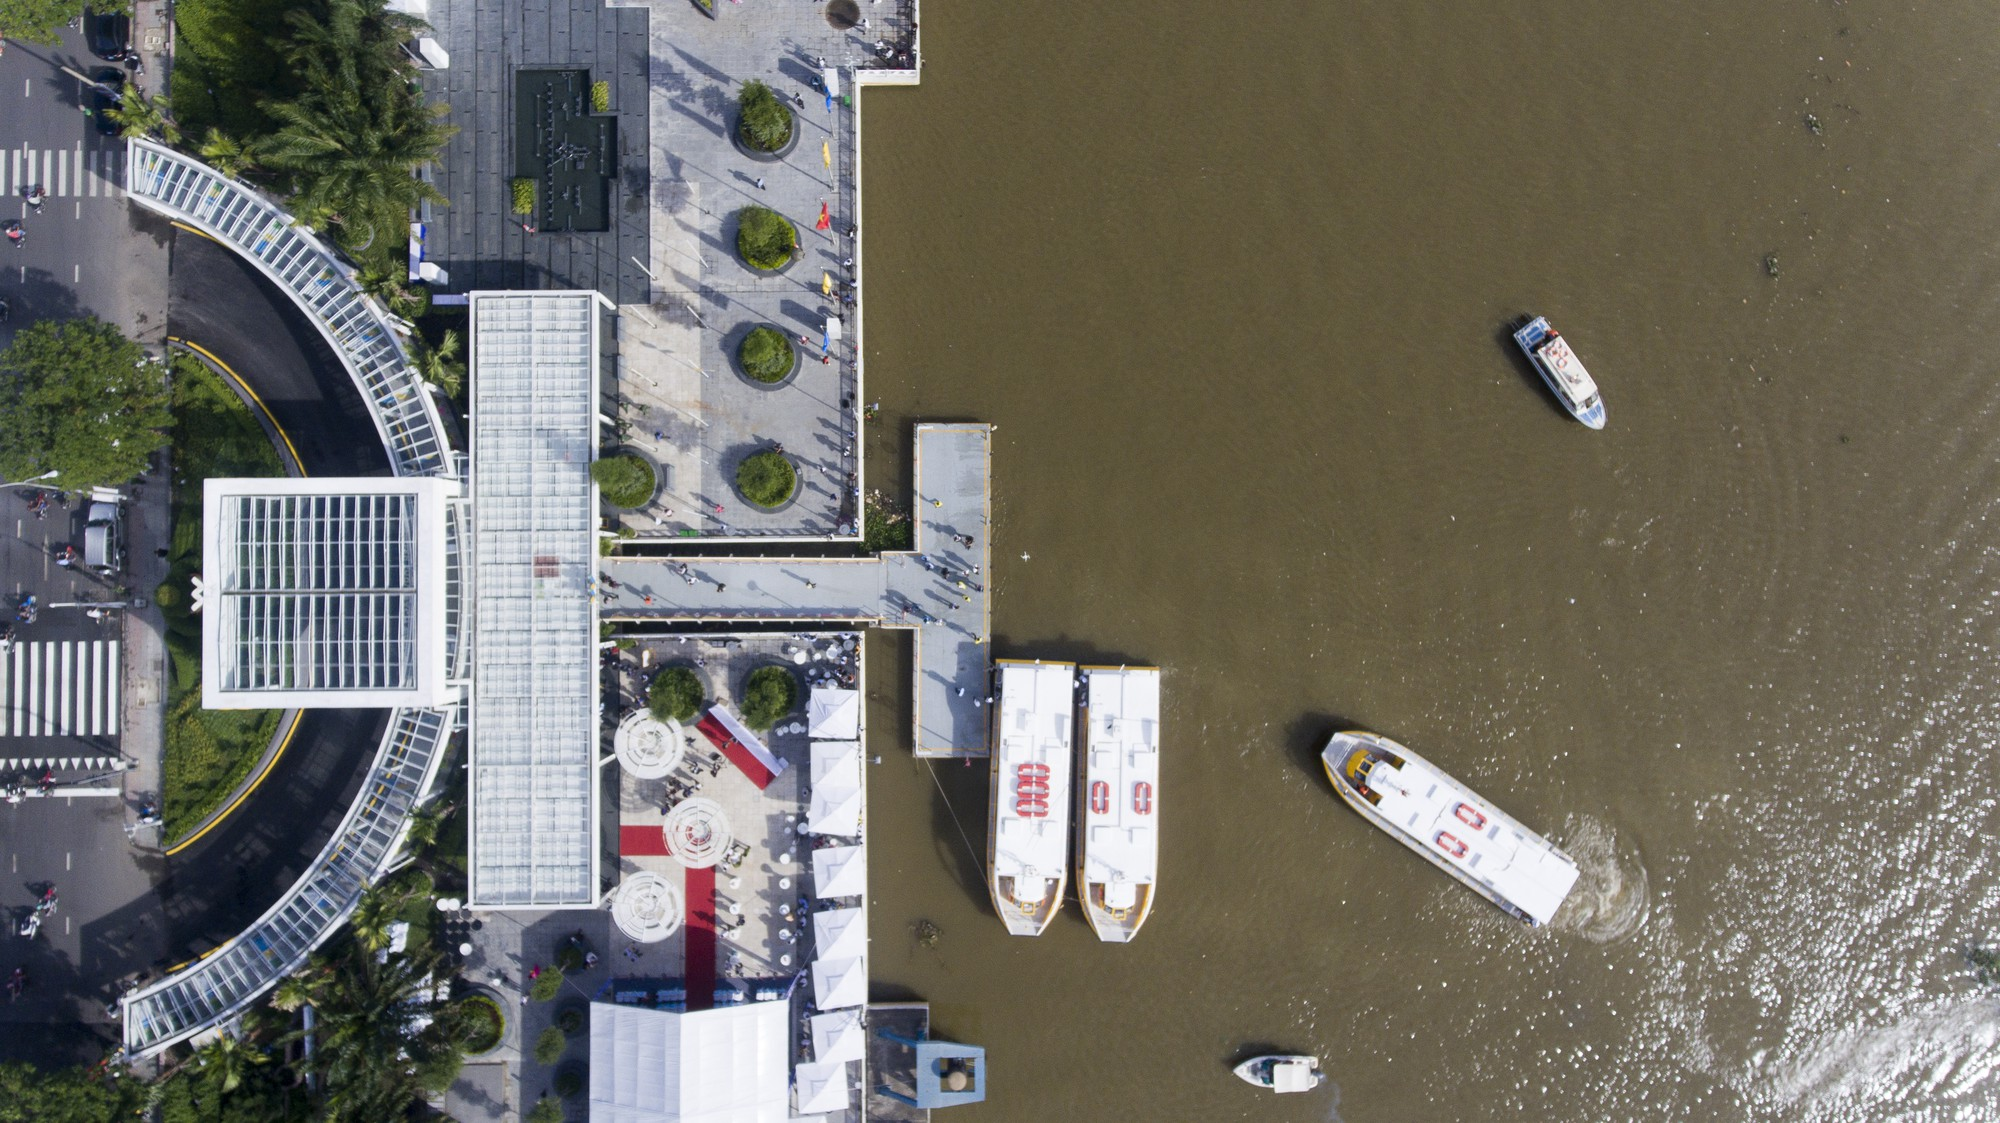 The river bus stop at Bach Dang Wharf is seen from above.